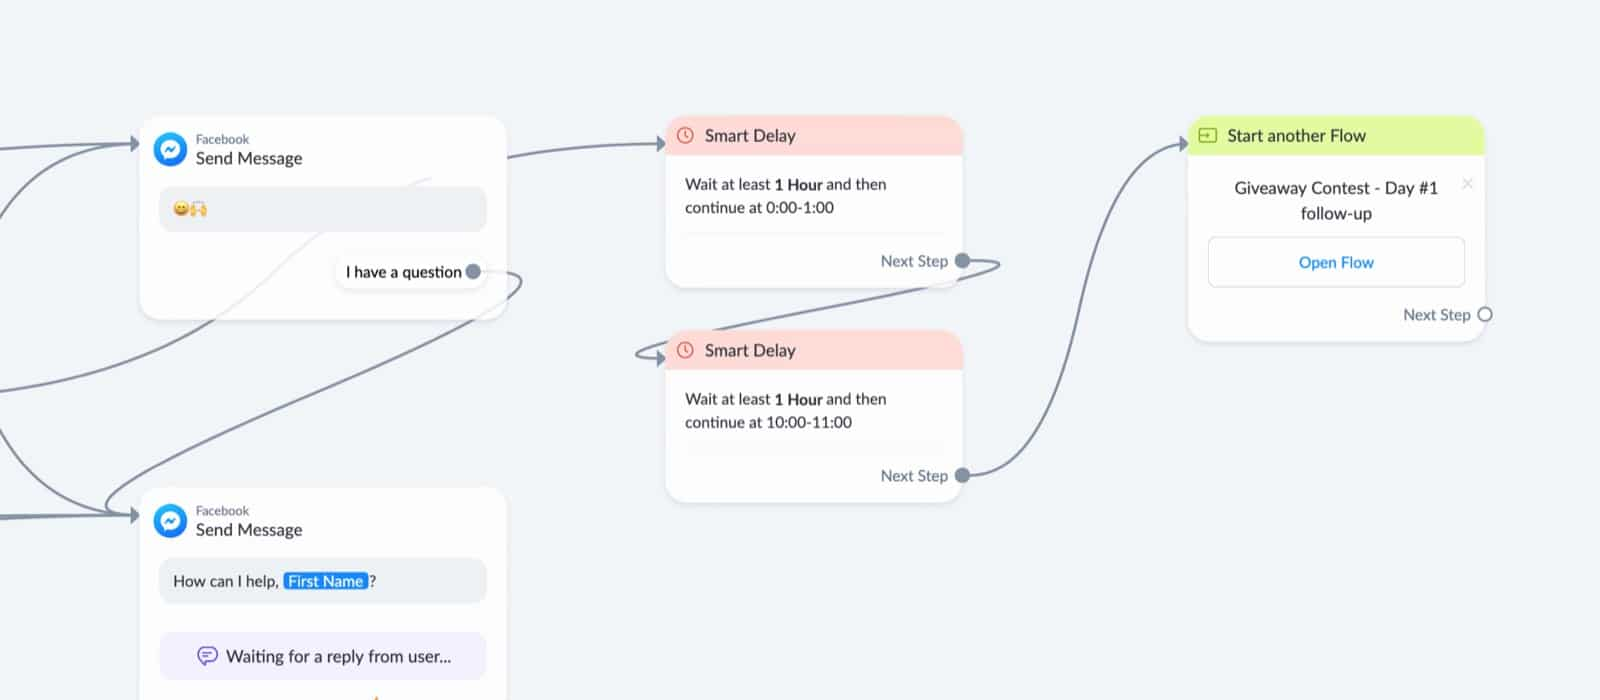 Add continue to other flow to registration flow in ManyChat